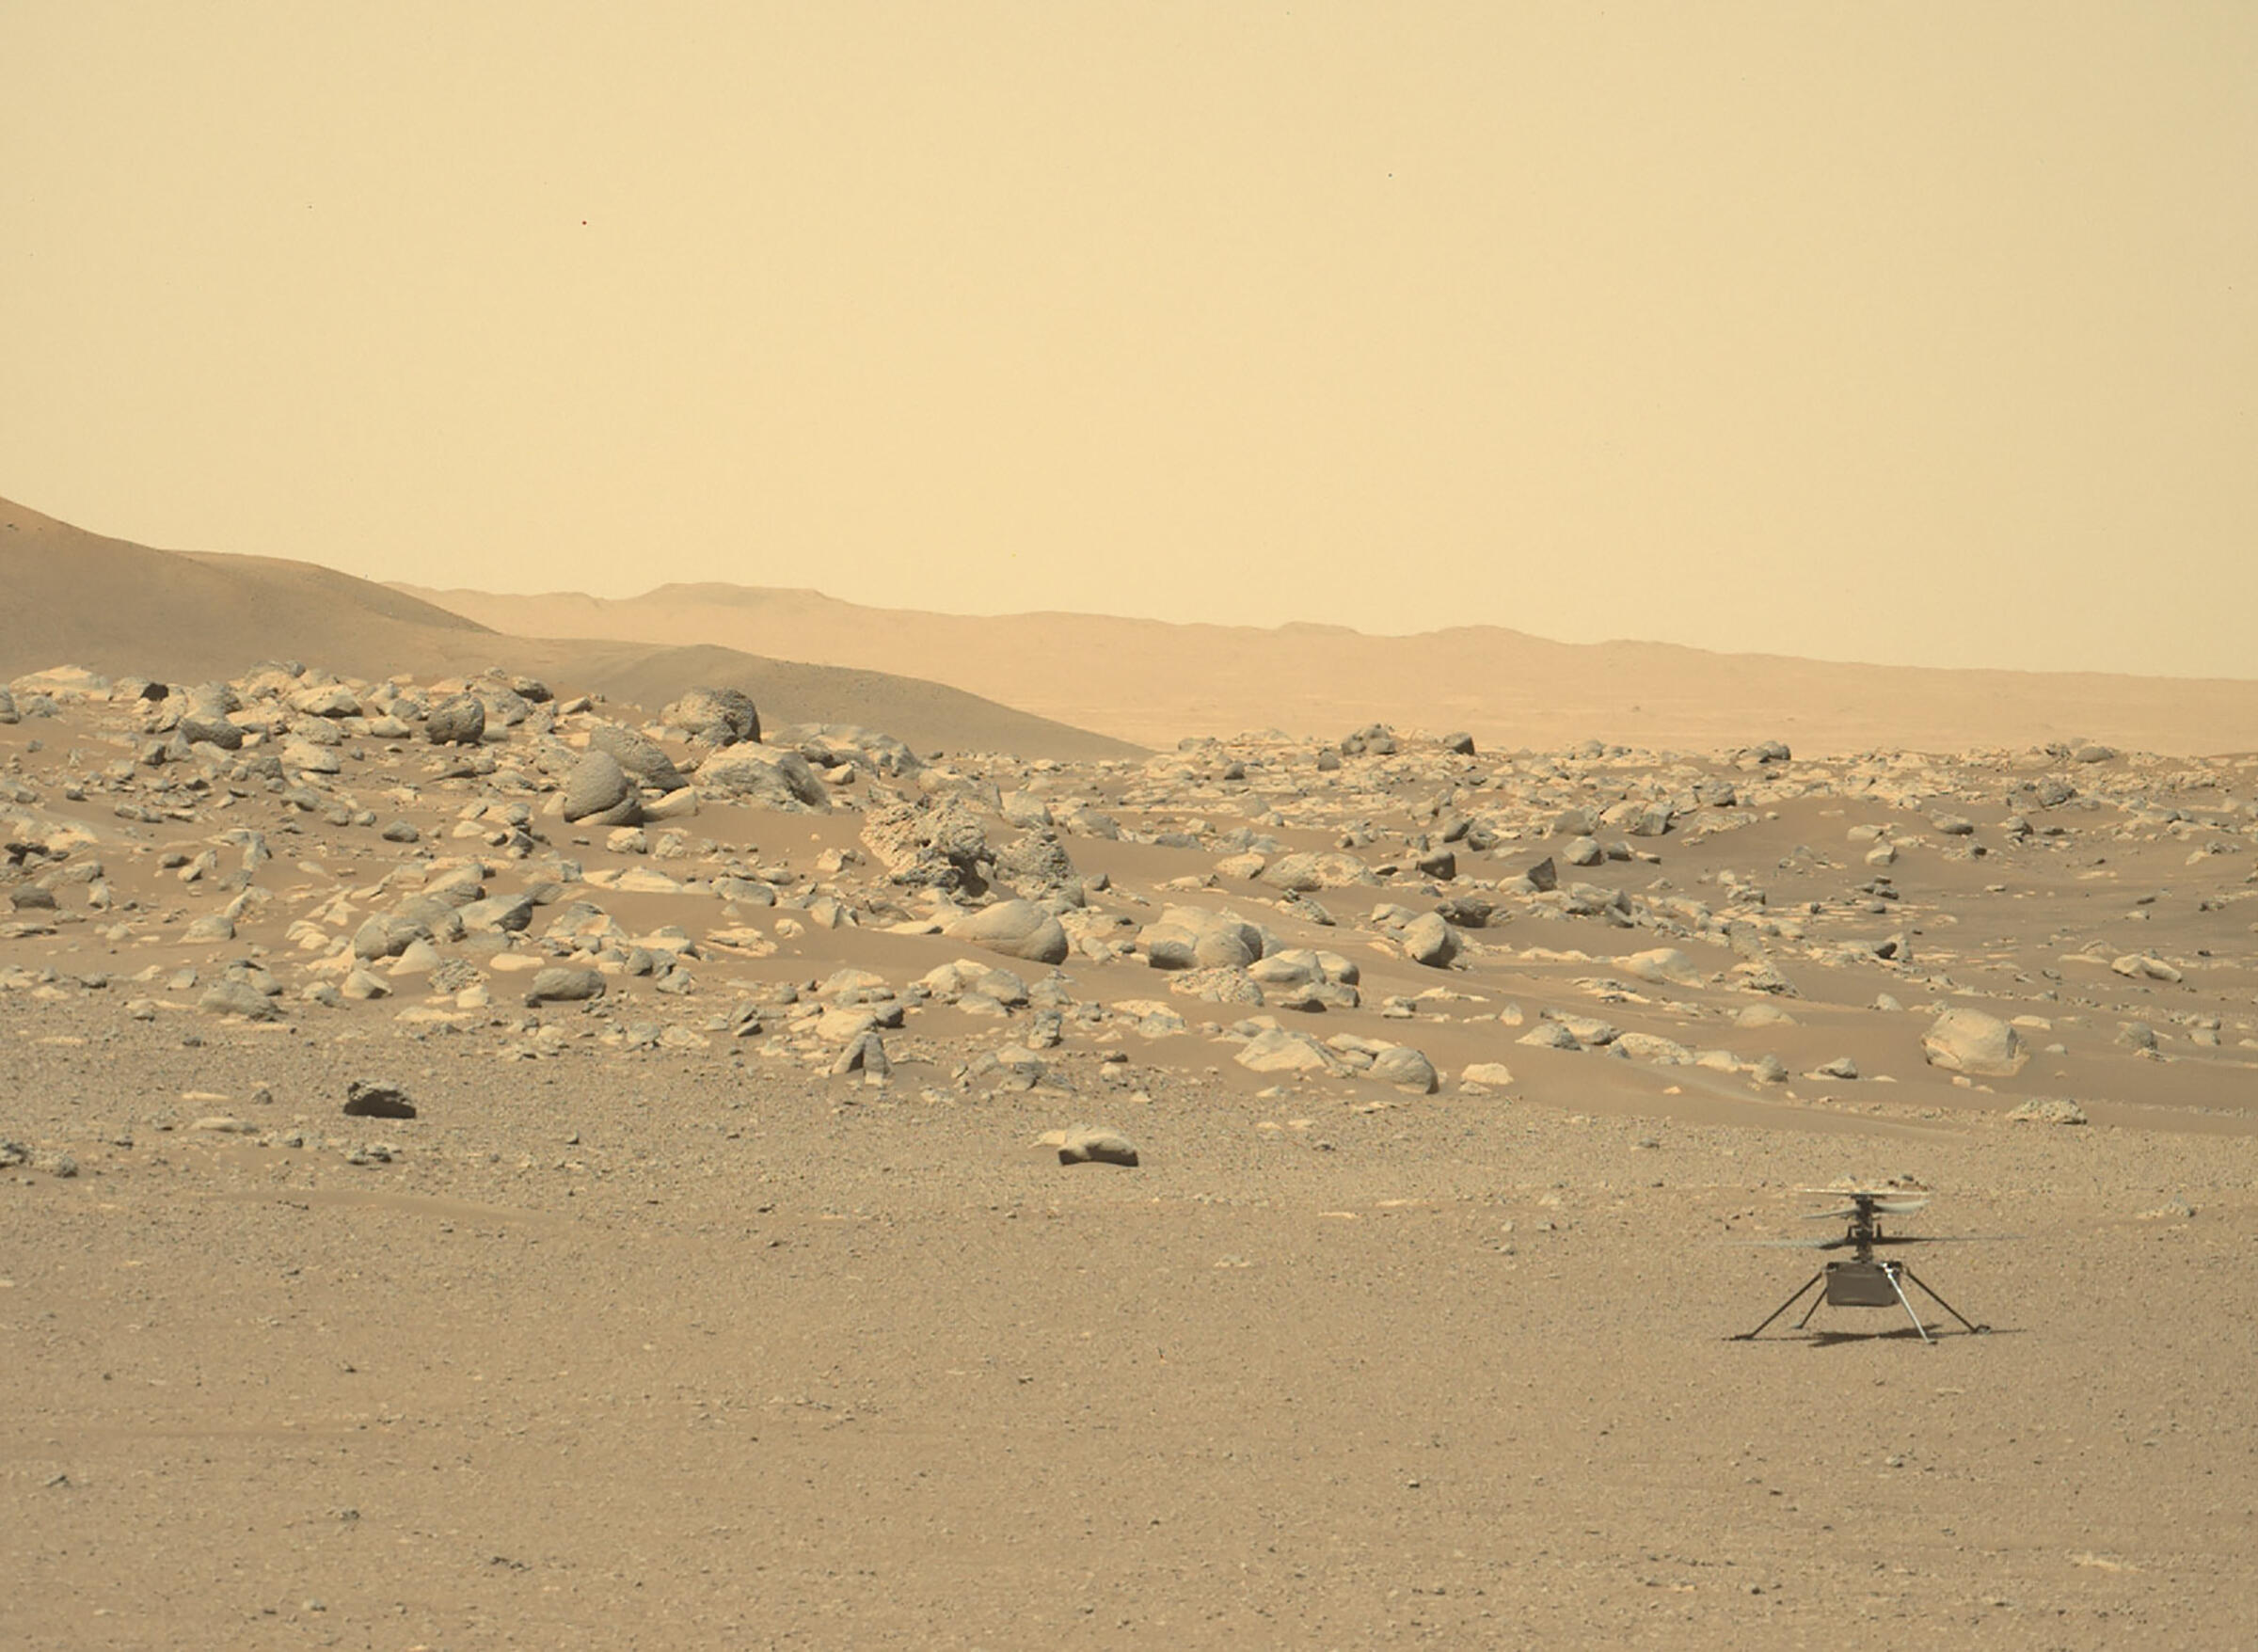 NASA's Ingenuity helicopter, photographed on the surface of Mars by the Perseverance rover on June 15, 2021